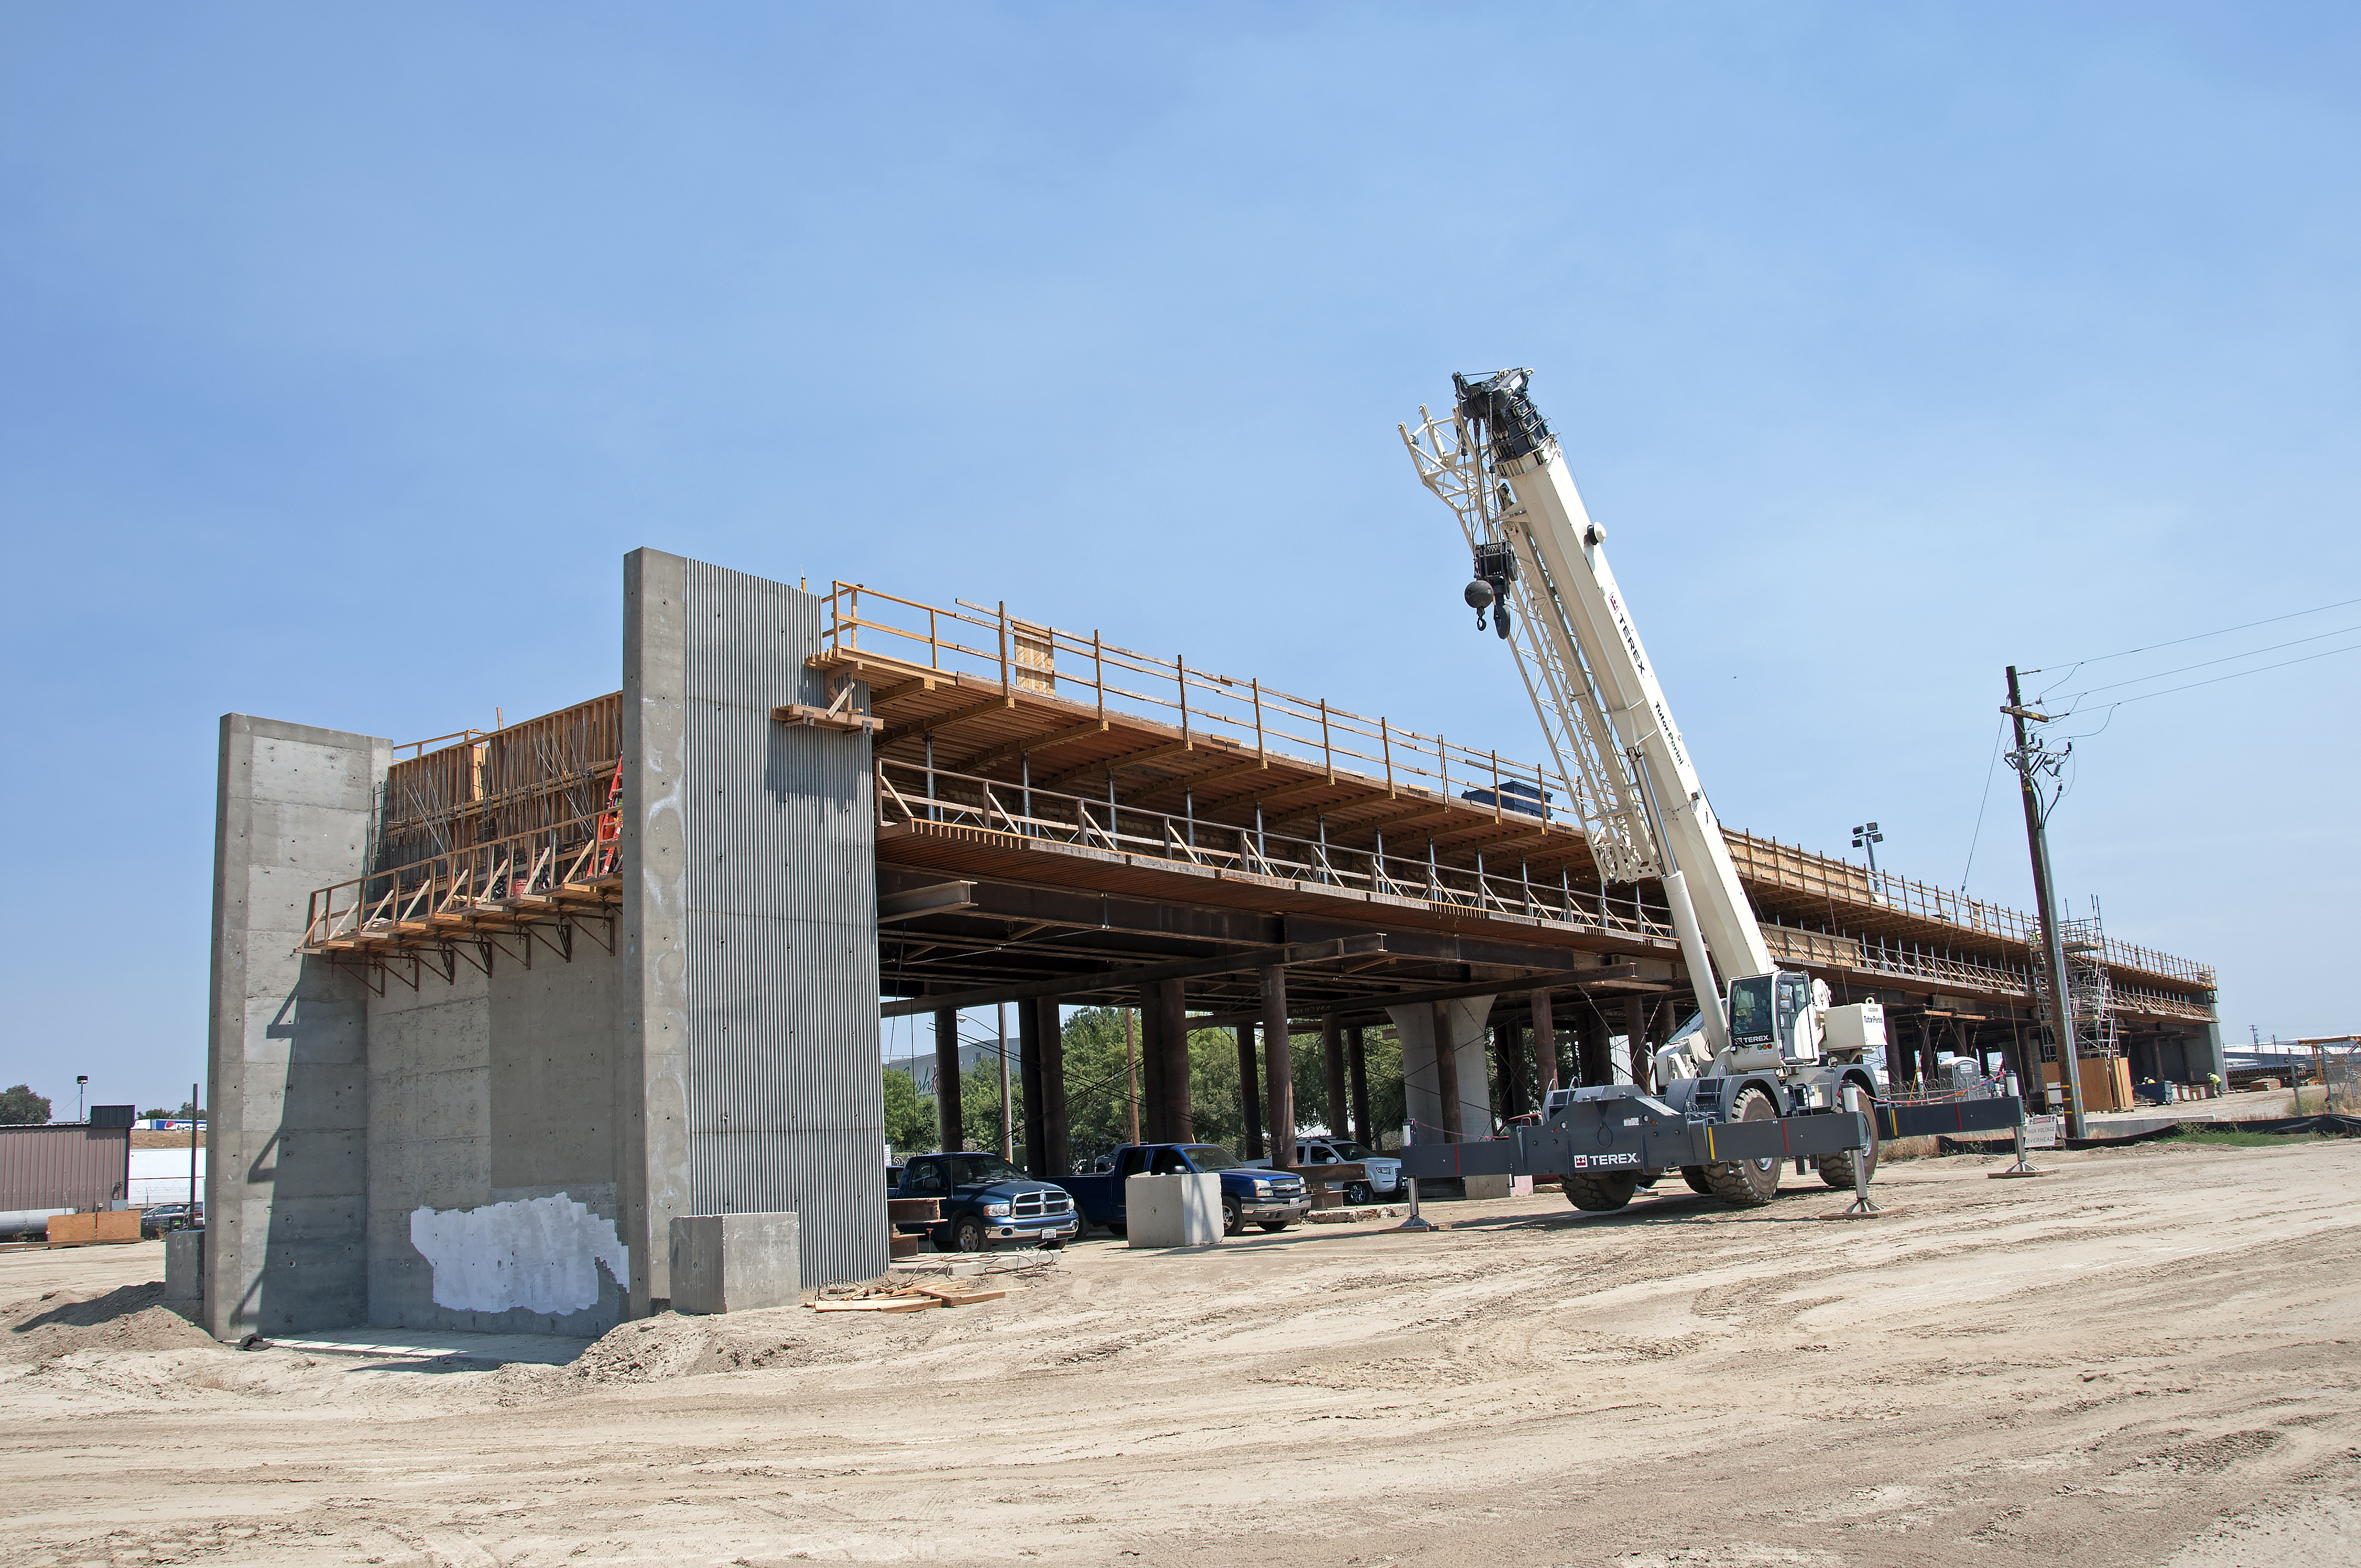 Construction of the Muscat Avenue Viaduct seen west of State Route 99 in Fresno, California.